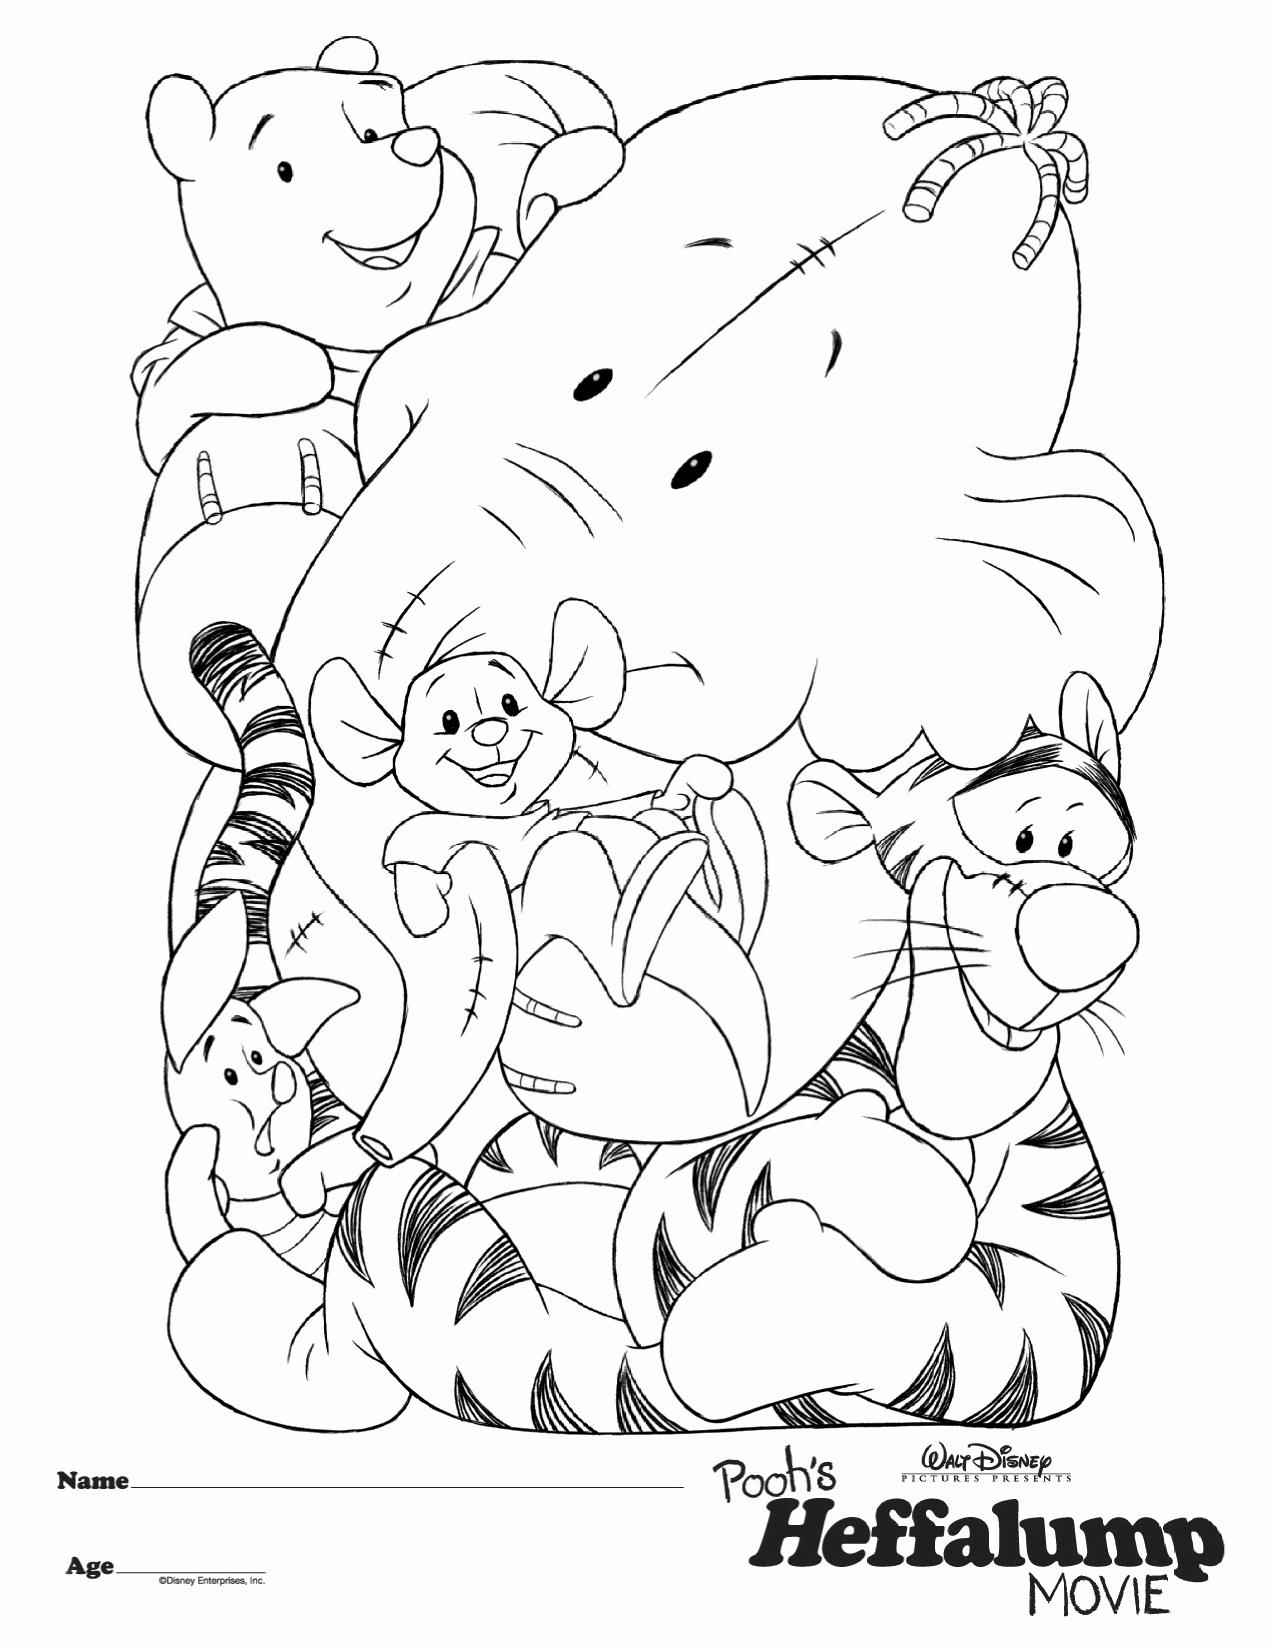 pooh heffalump coloring pages | A Heffalump And Roo Coloring Pages Coloring Pages